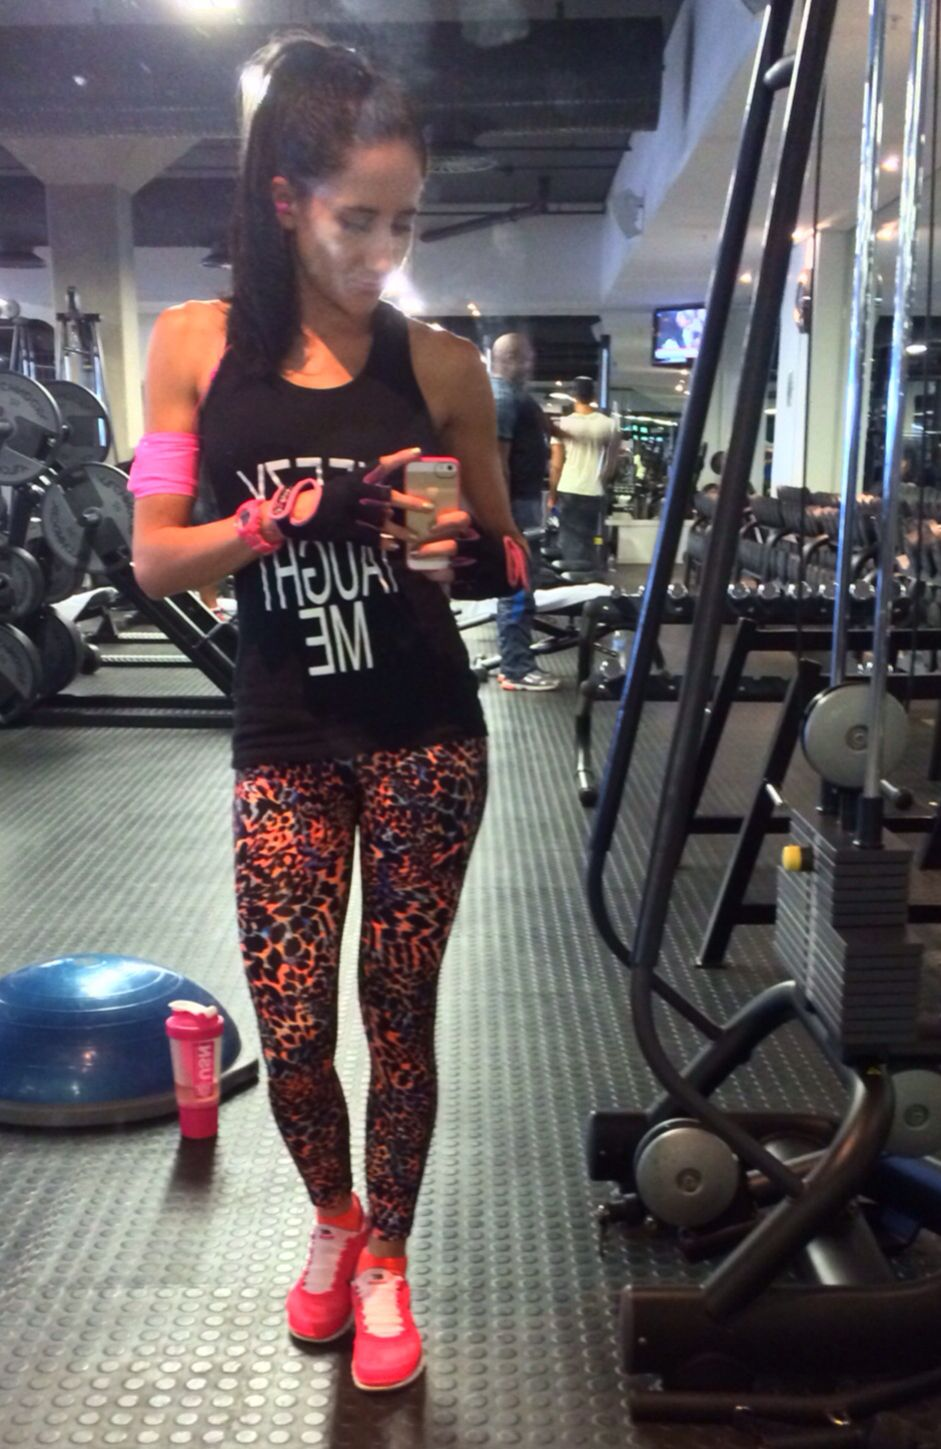 Gym outfit ❤ coral & orange leopard print gym tights, coral nike shoes!